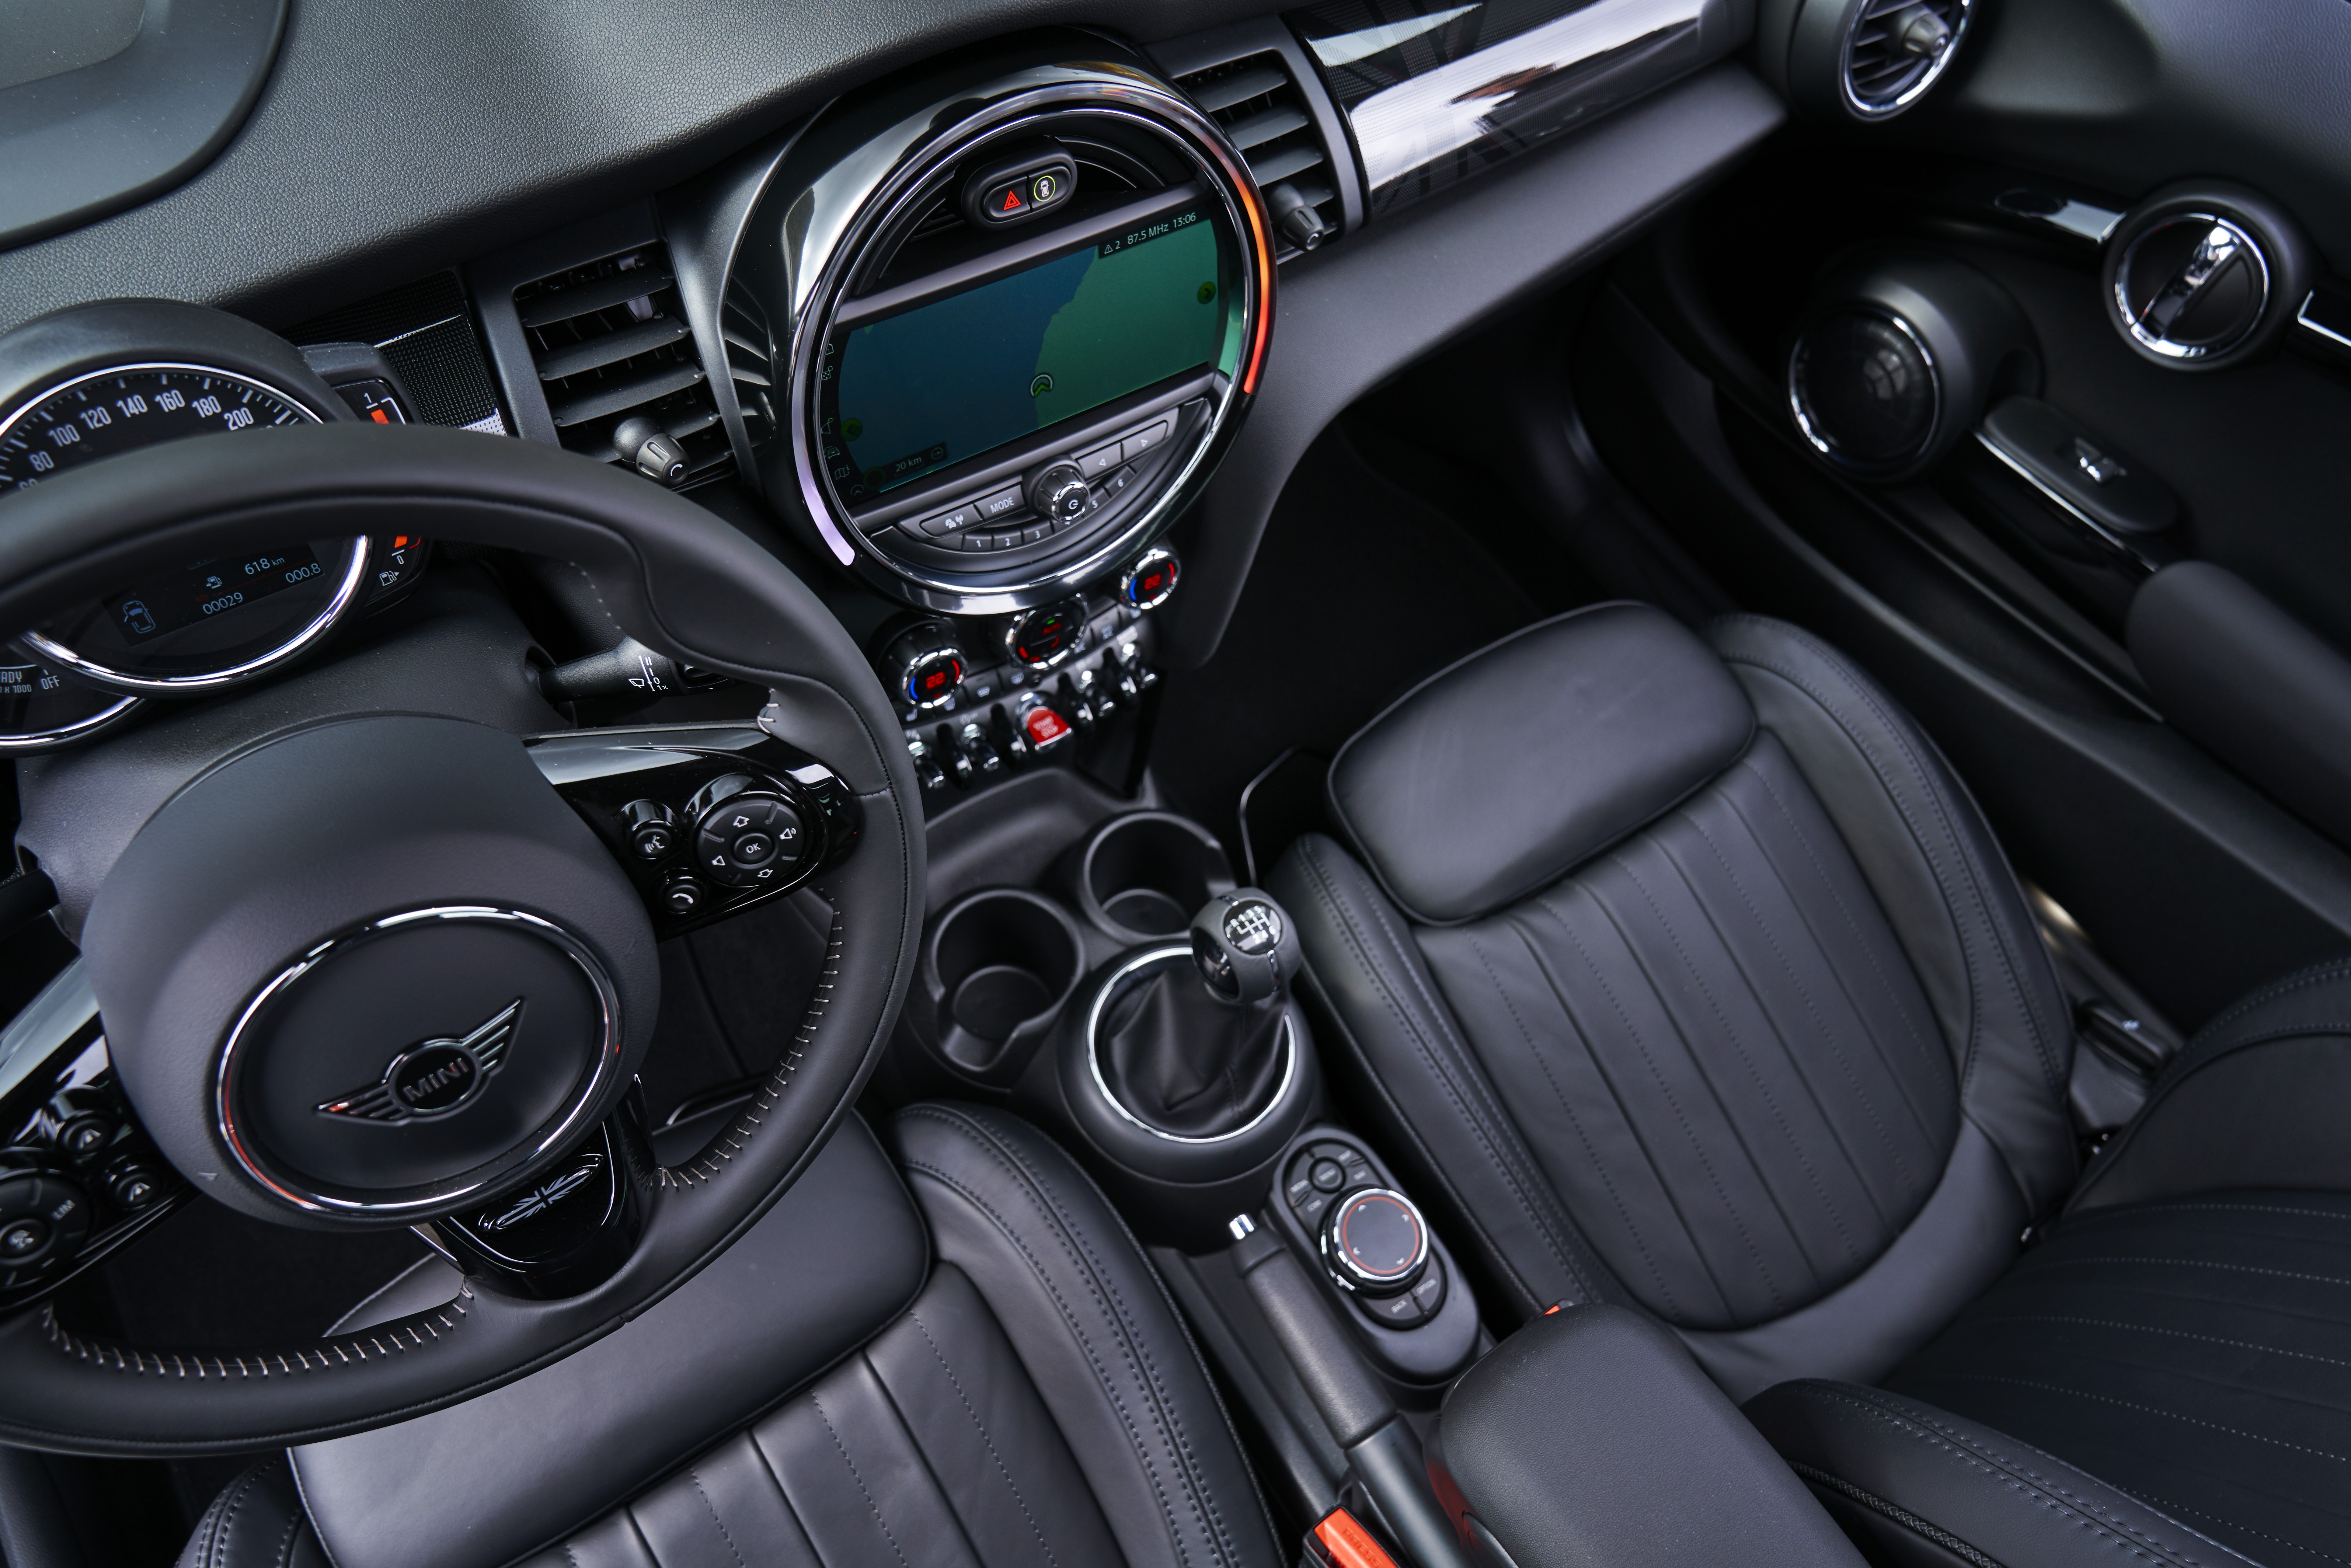 MINI Updates Entire Range With Gasoline Particulate Filter